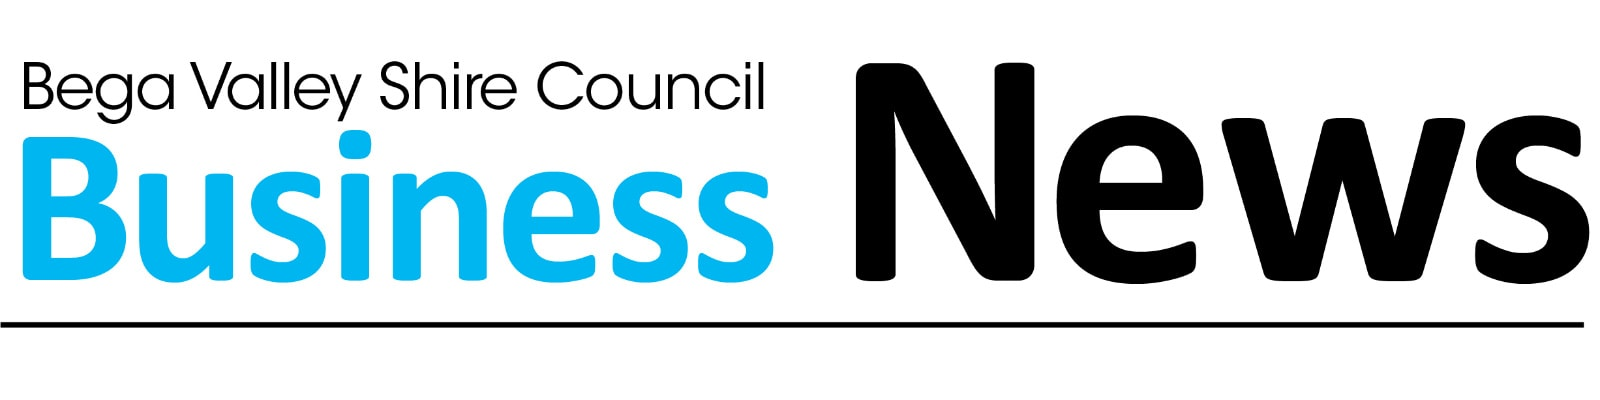 Words, Bega Valley Shire Council Business News.